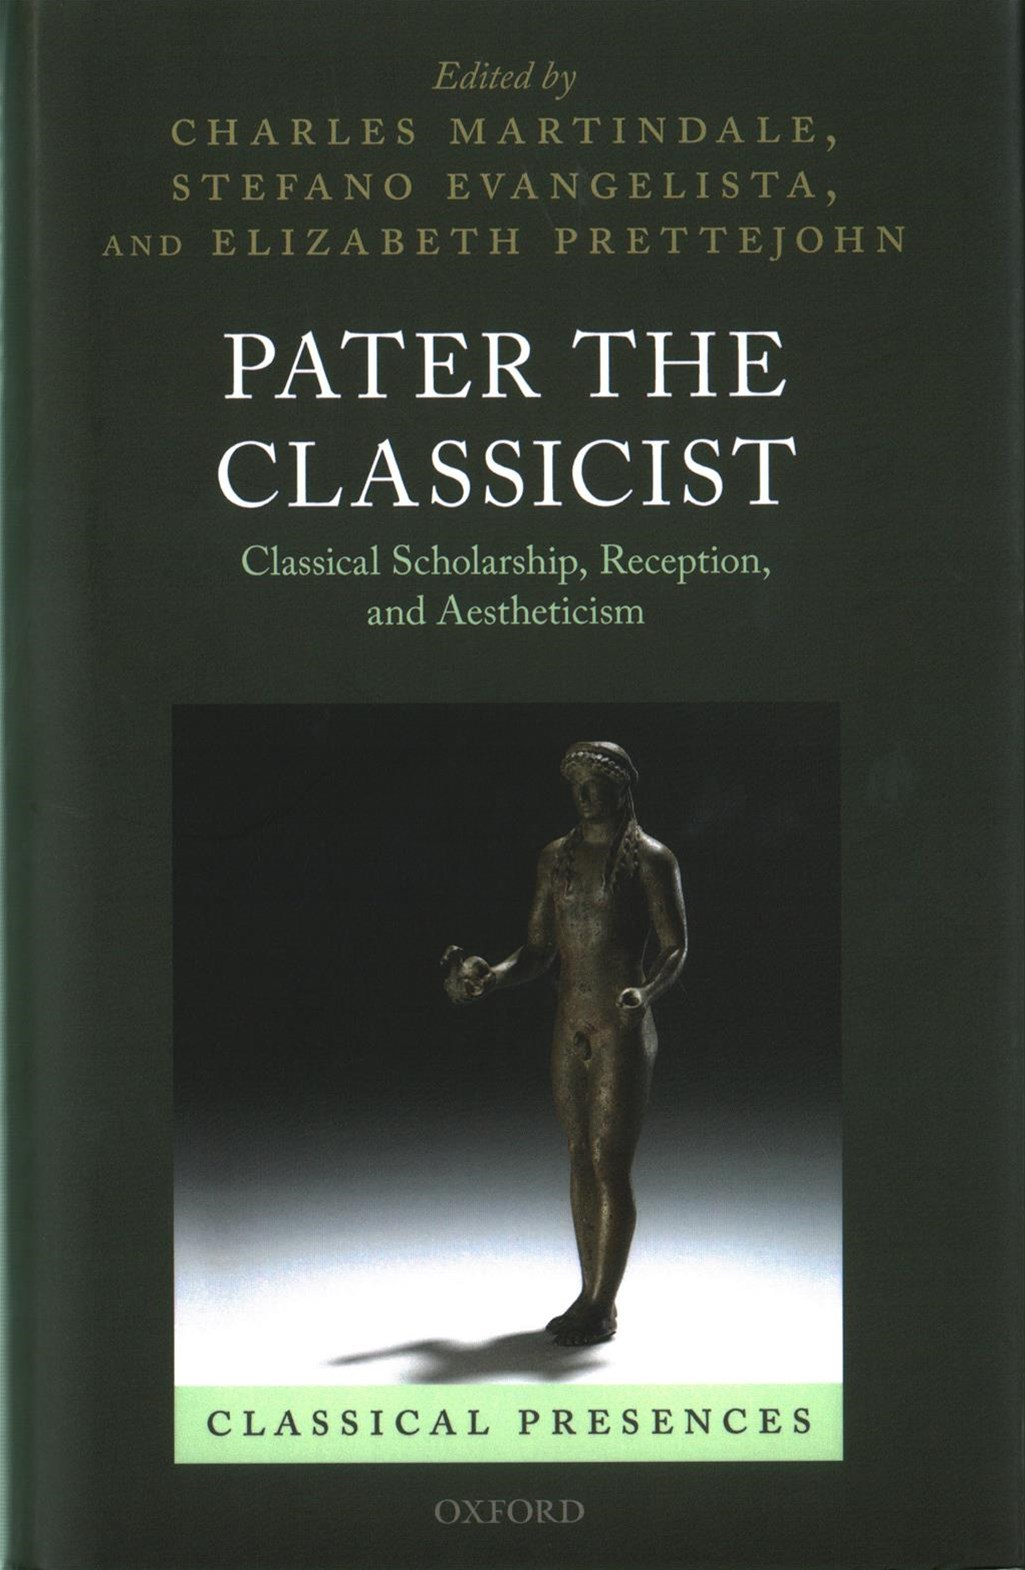 Pater the Classicist